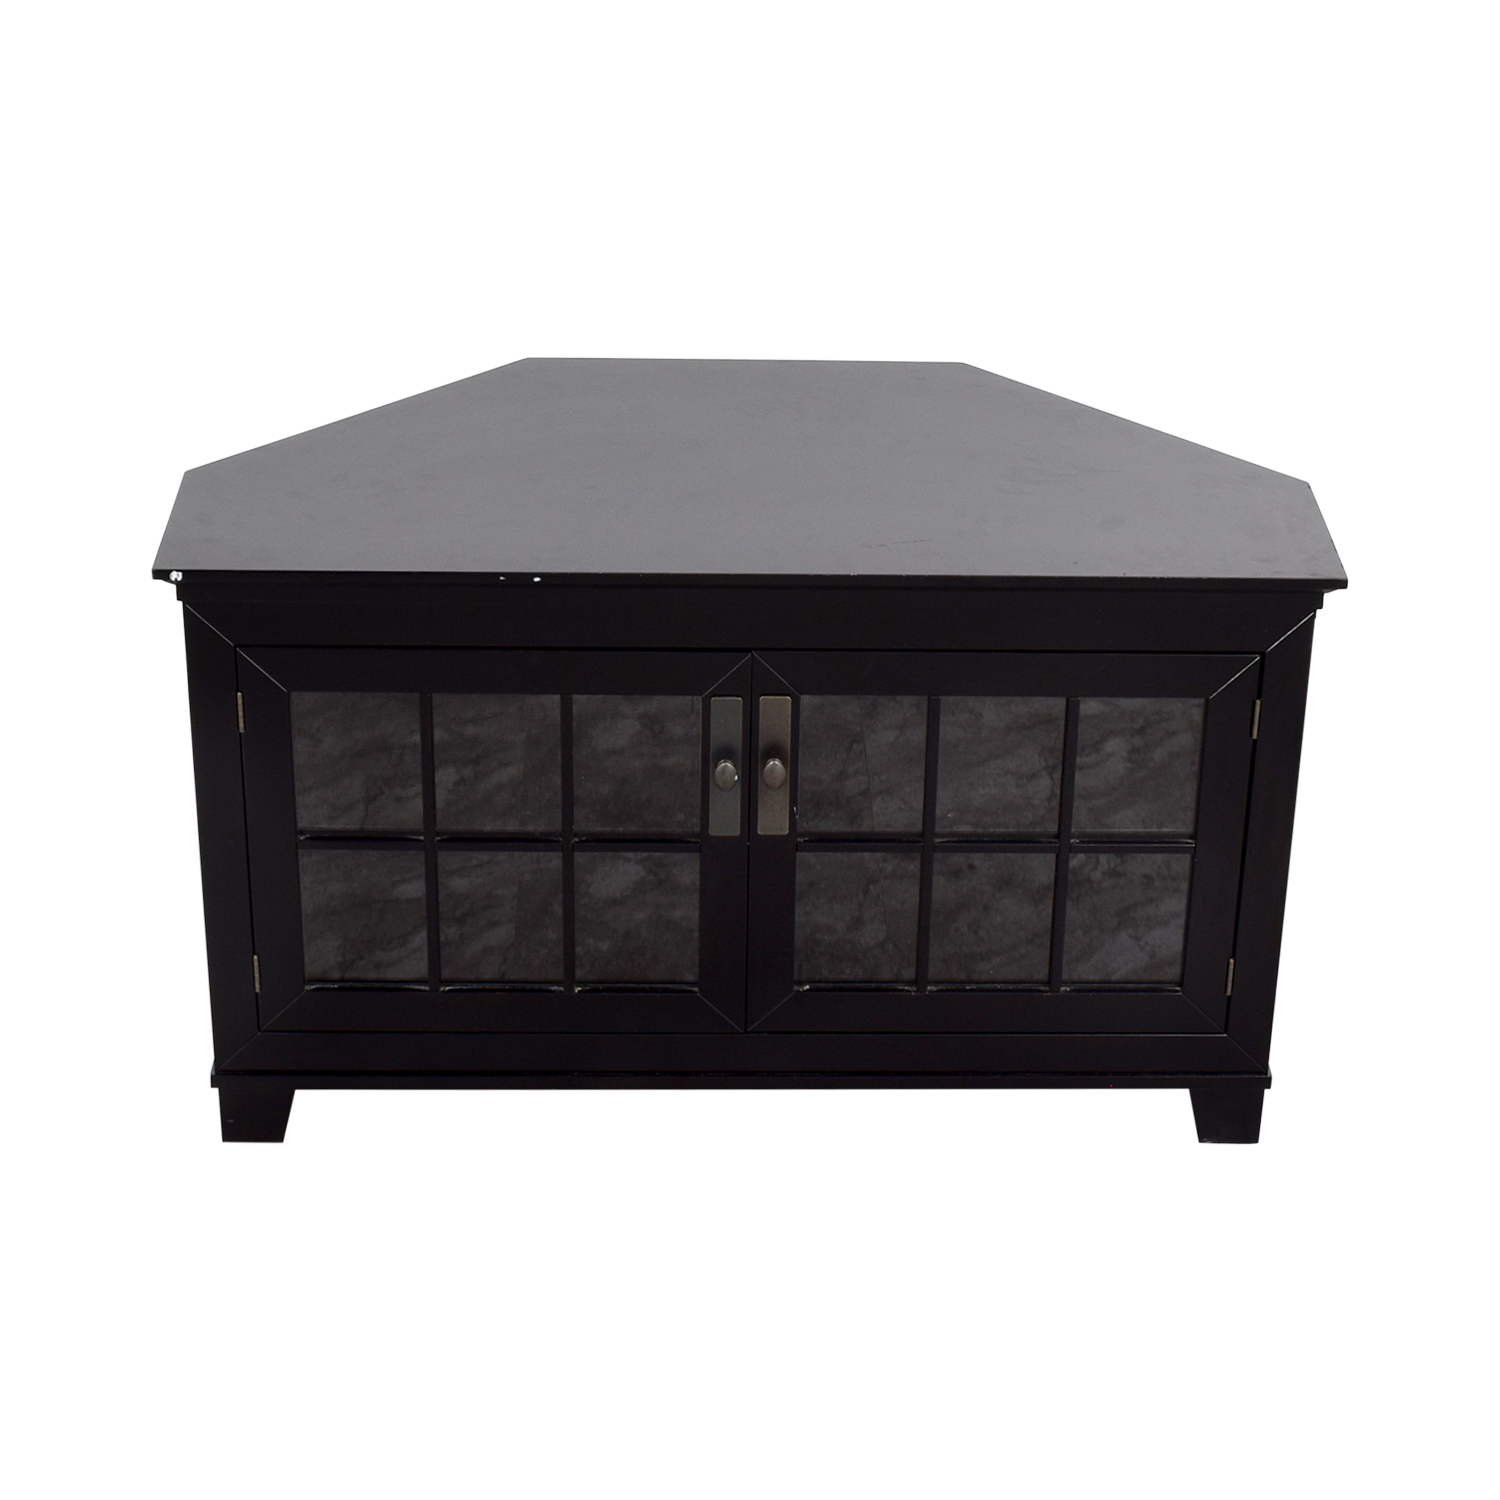 Crate & Barrel Crate & Barrel Wood and Glass Media Console coupon